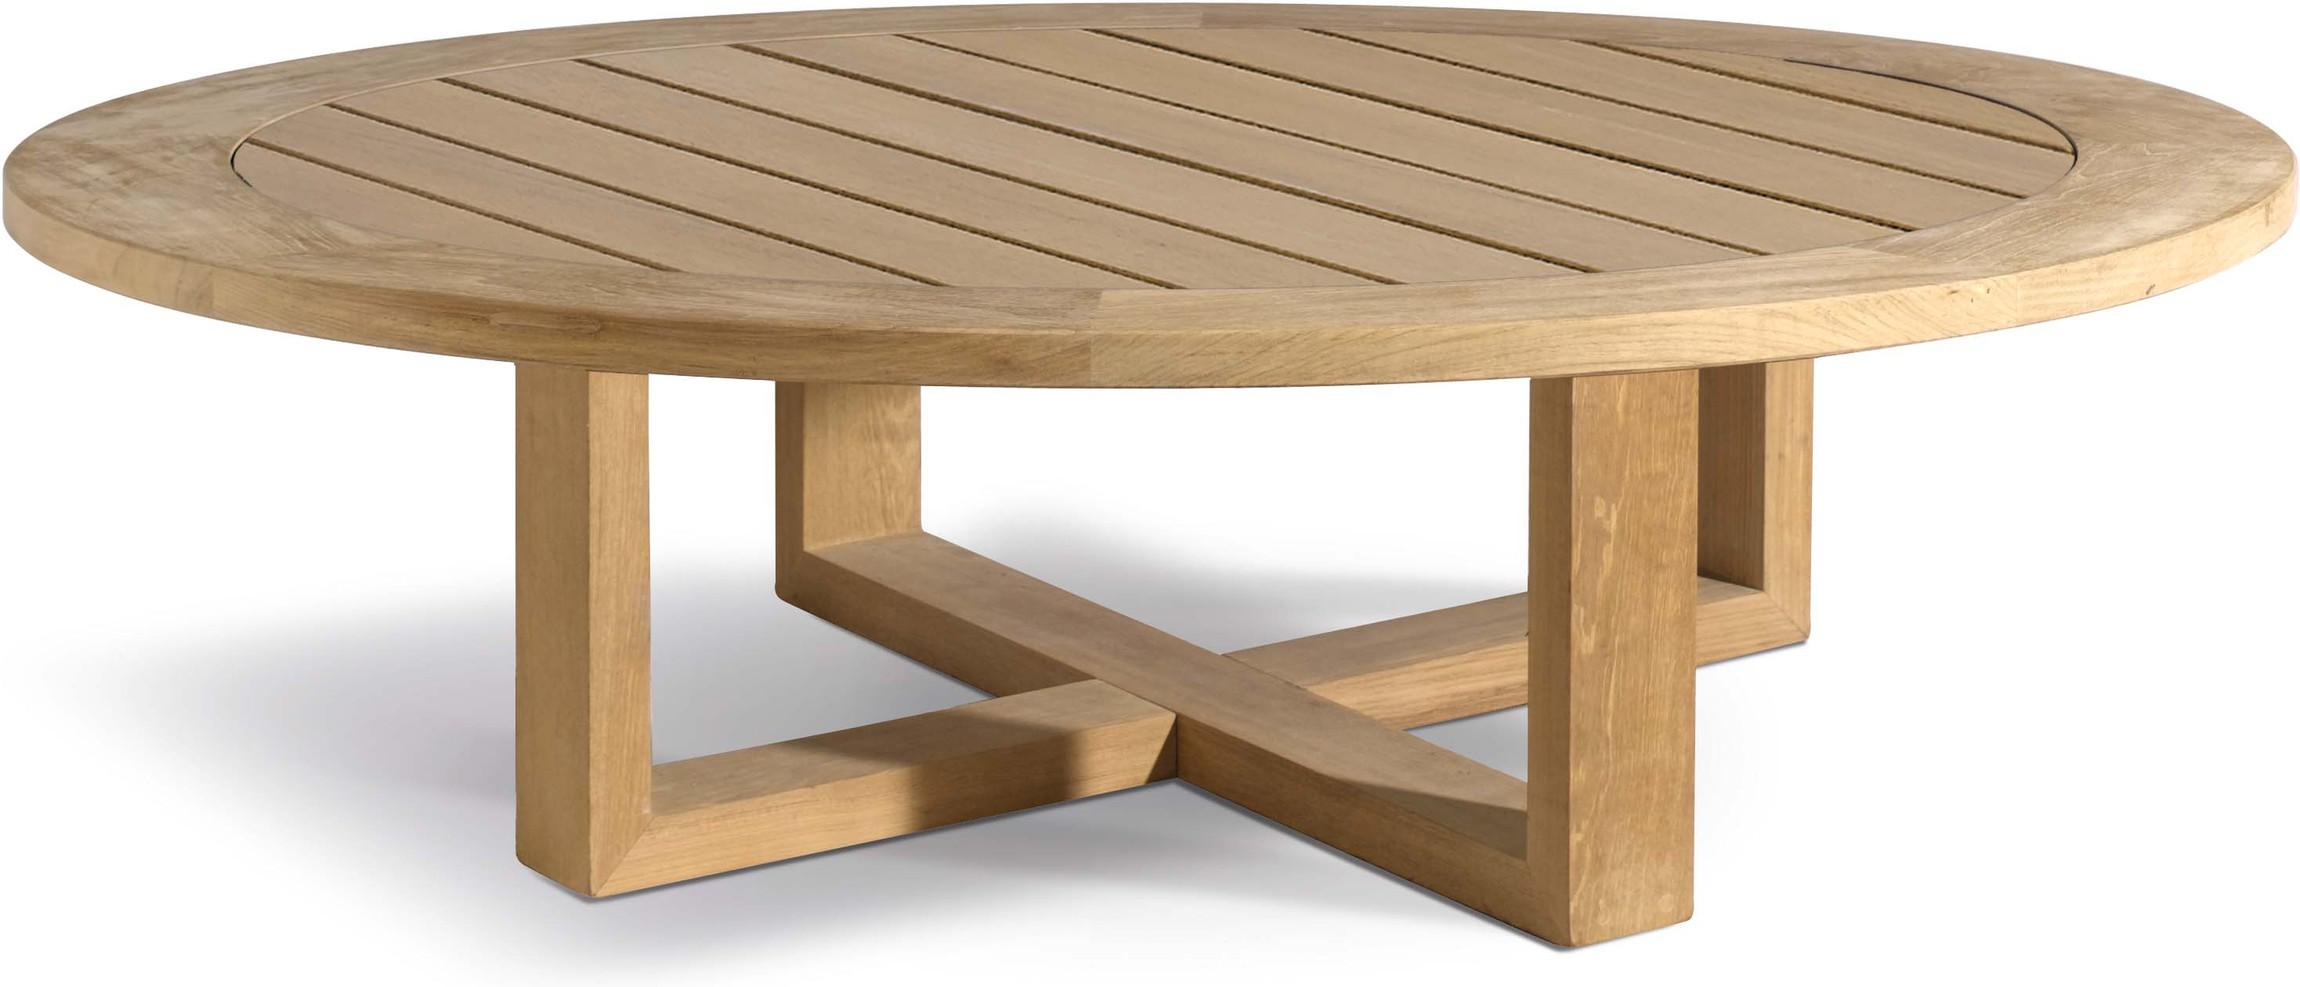 Siena Low table - Teak - Teak 105